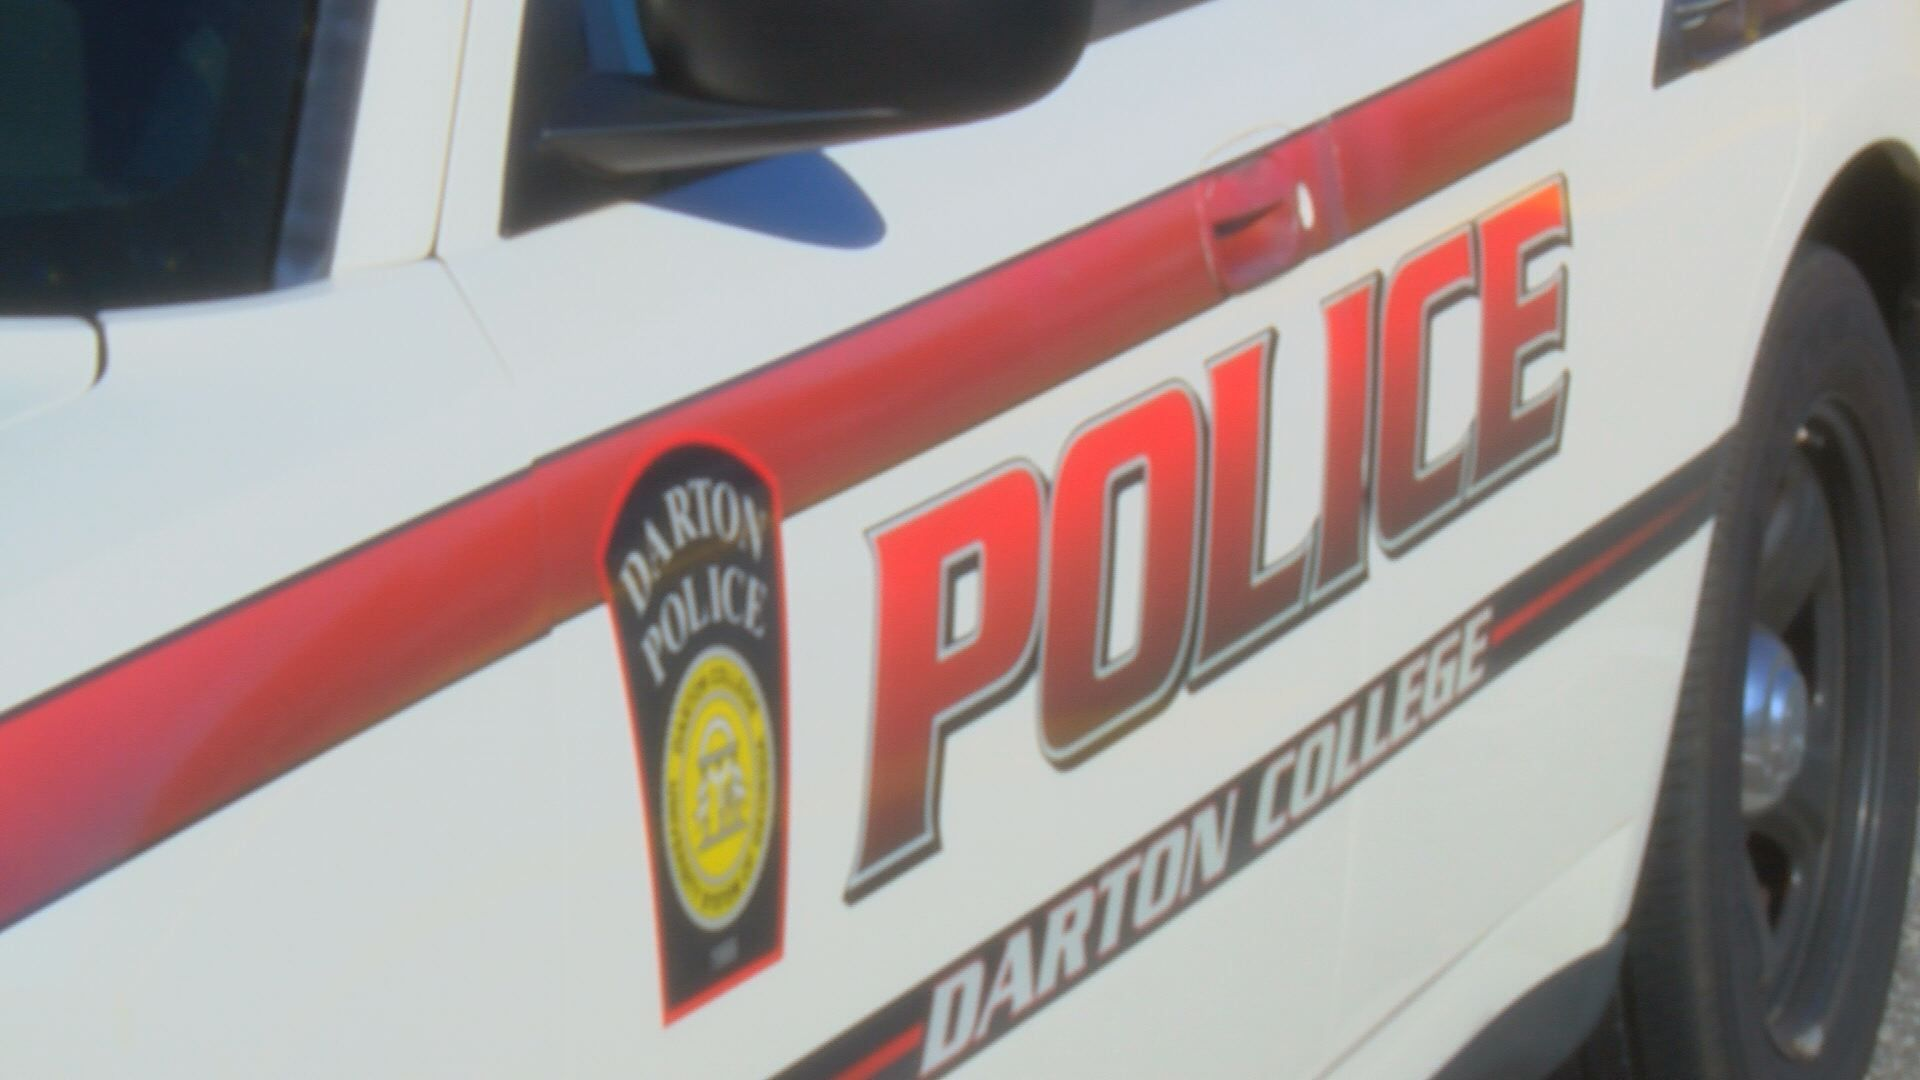 Police officer escorted out of Darton College classroom